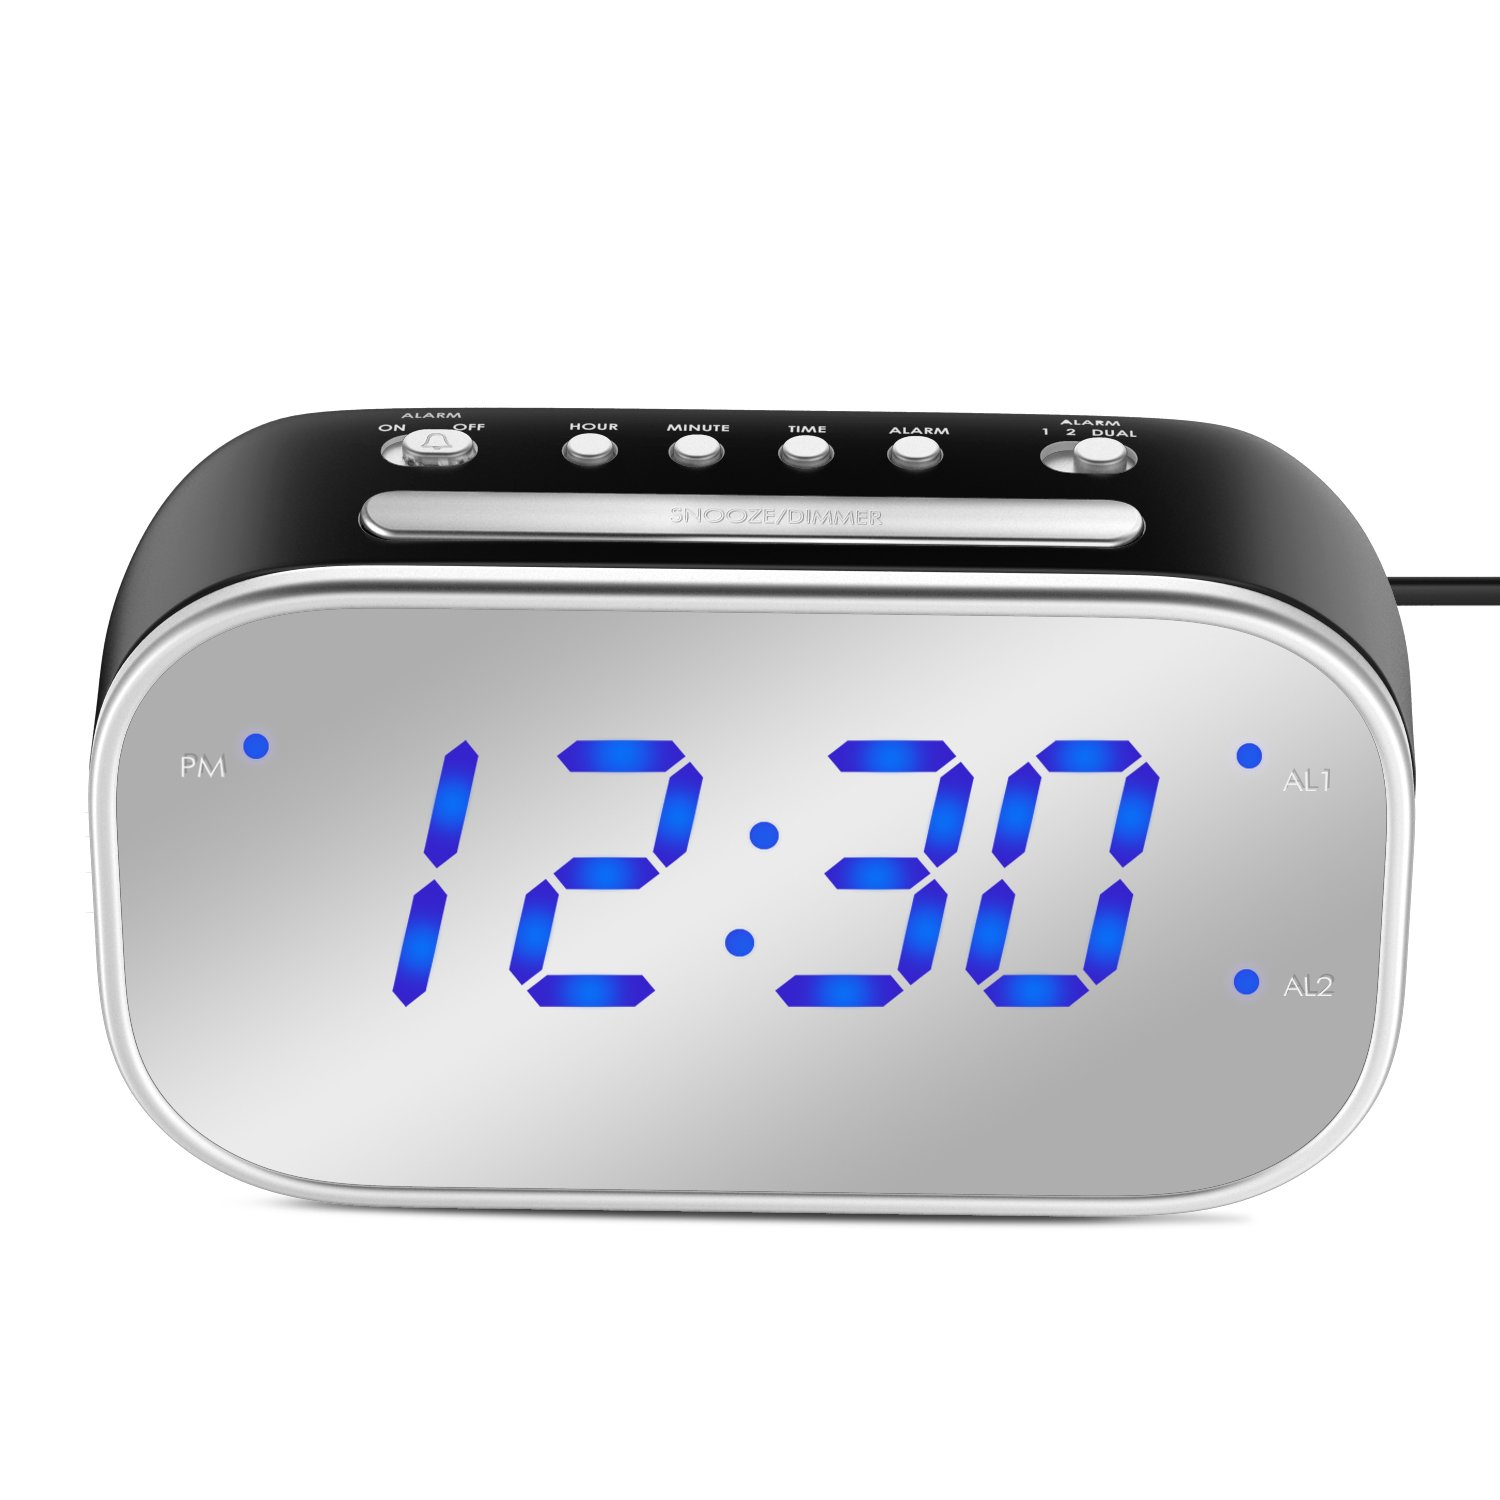 MoKo Mirror Alarm Clock, Large 1.4'' LED Display Table Desk Lamp Makeup Mirror Travel Clock for Office Bedroom Bathroom, Dual Alarm with Snooze, Dimmer Control, Backup Battery (Not Included) - BLACK by MoKo